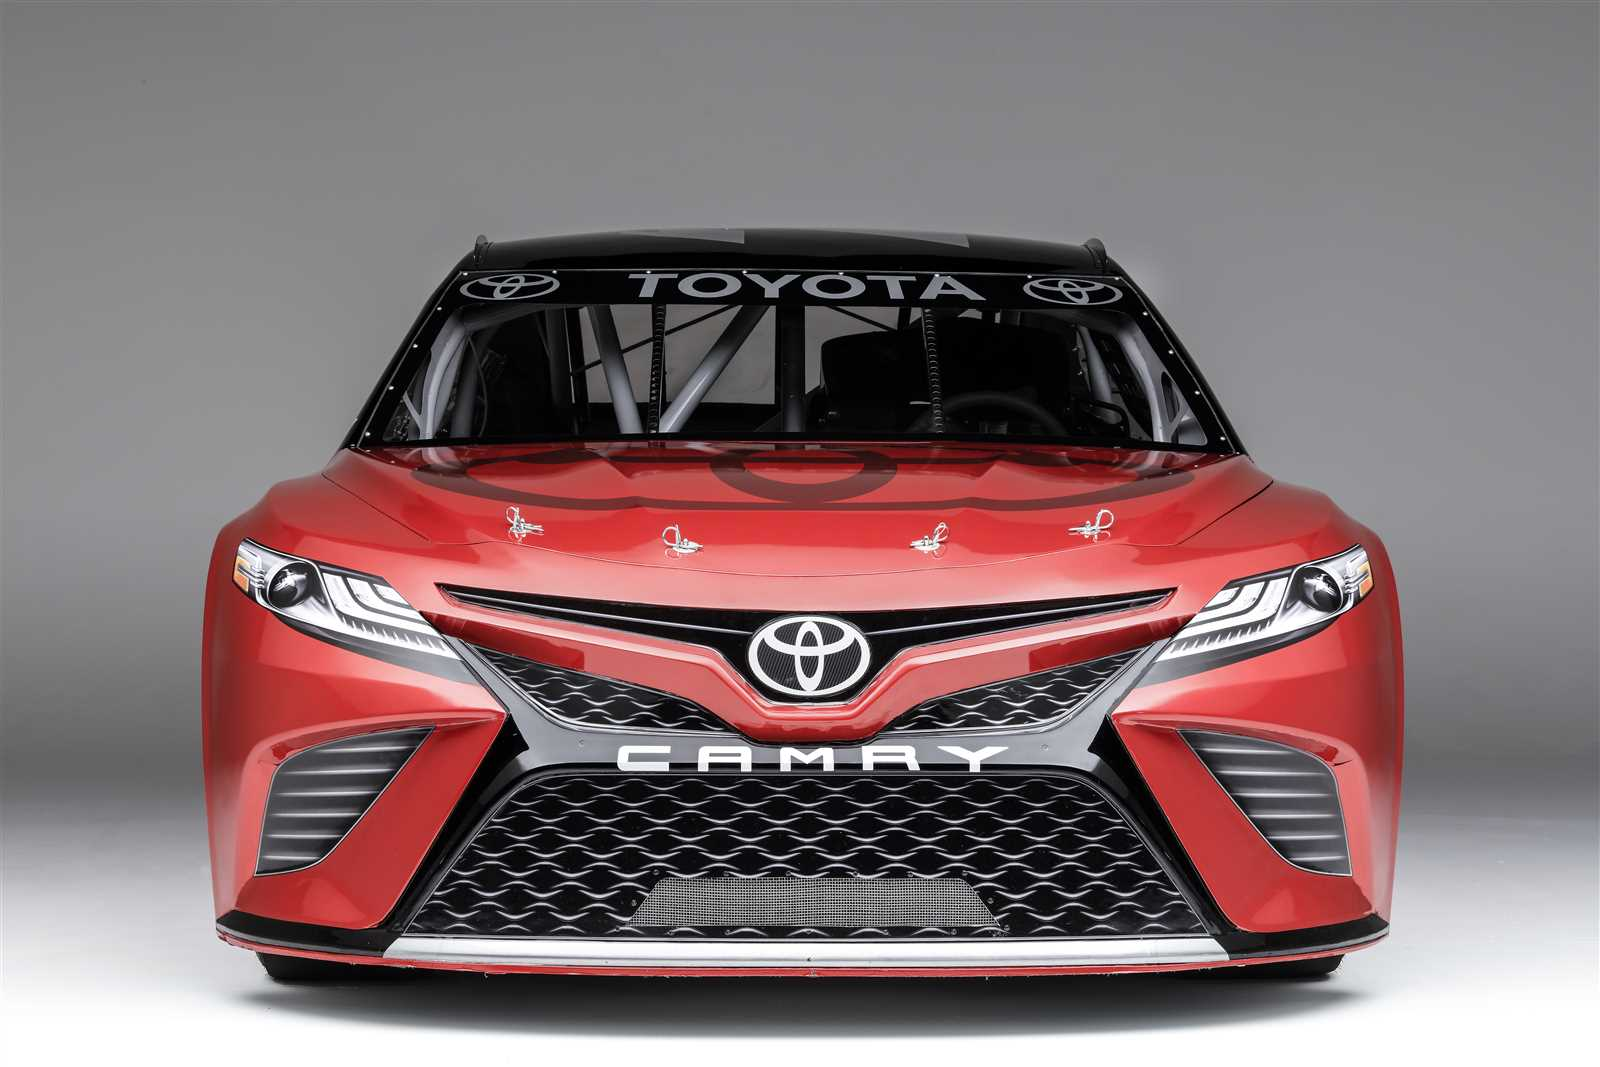 First Look New Toyota Race Car Official Site Of NASCAR - Toyota show car